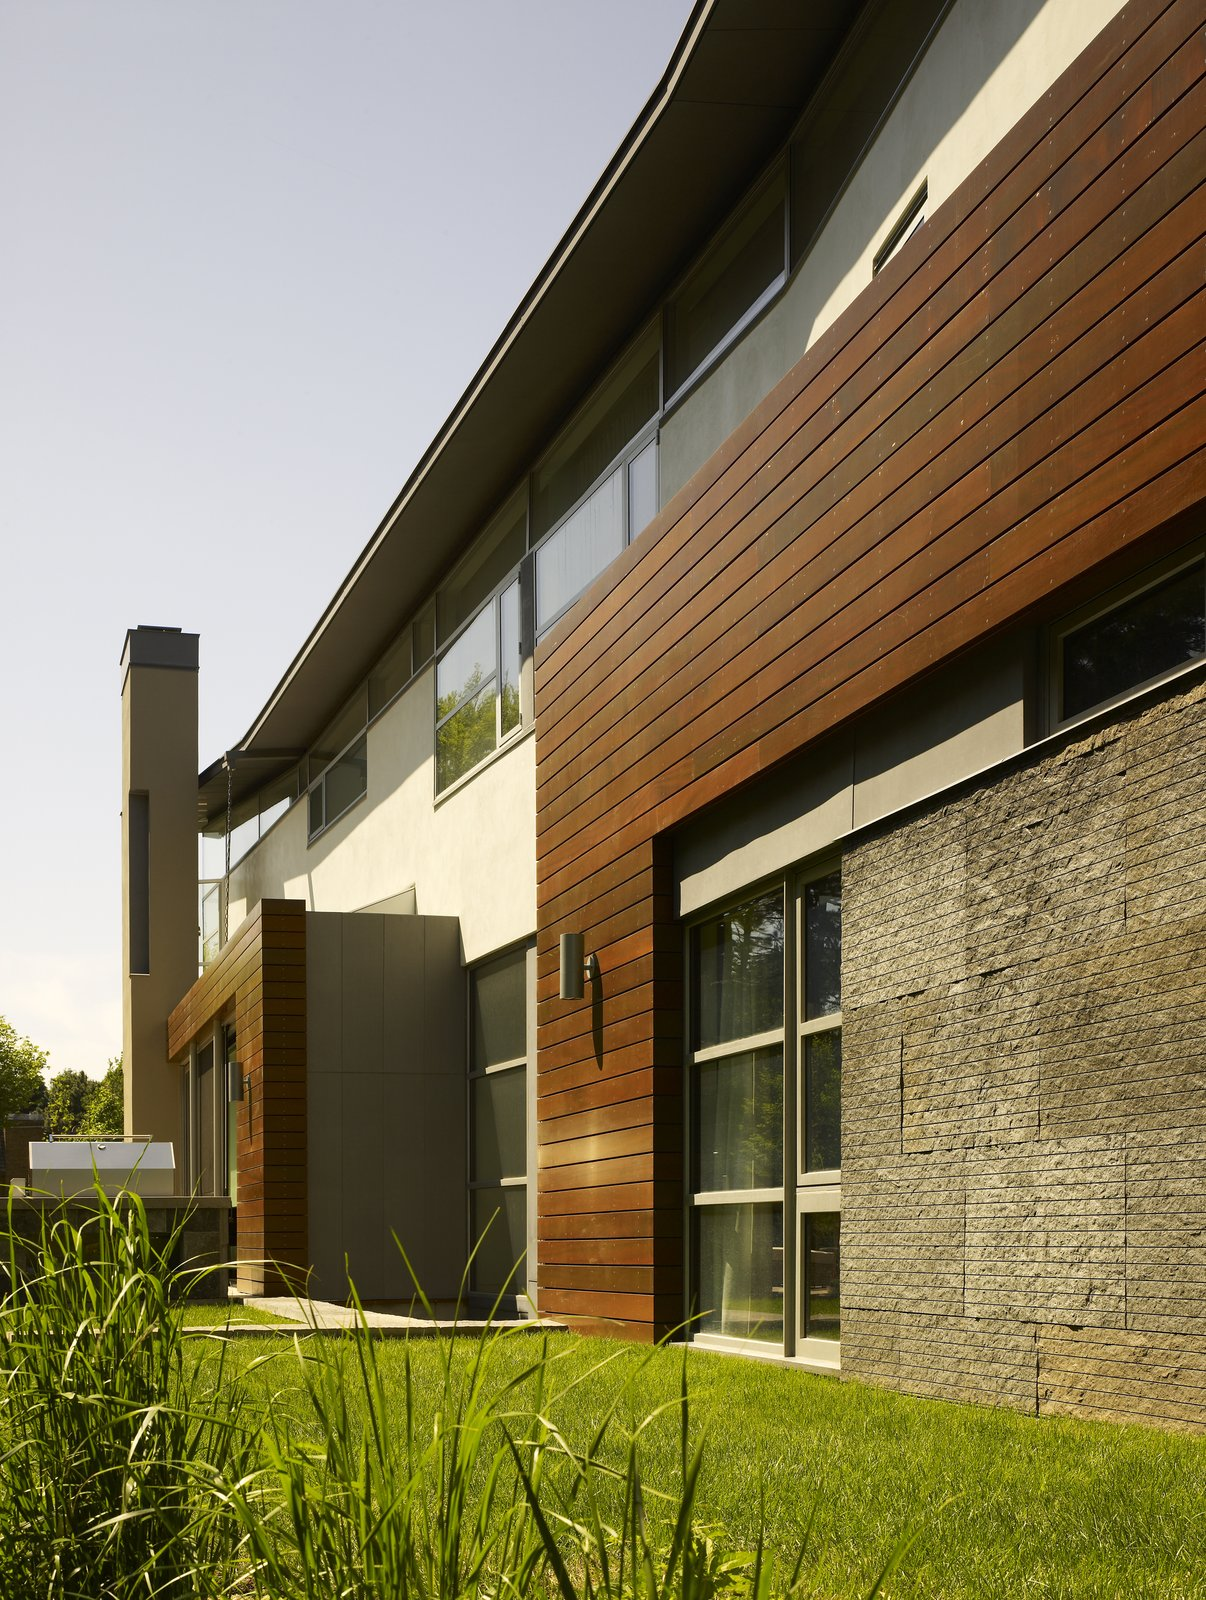 The first floor base is mostly solid, in response to the harsh Canadian winter, and is clad in layer of stone and wood.  It reads heavy and rooted to the earth. As the façade lifts up and away from the grade, it is wrapped in wood and detailed as a rain-screen, which stands proudly on the stone below it.    Davis Residence by Abramson Teiger Architects